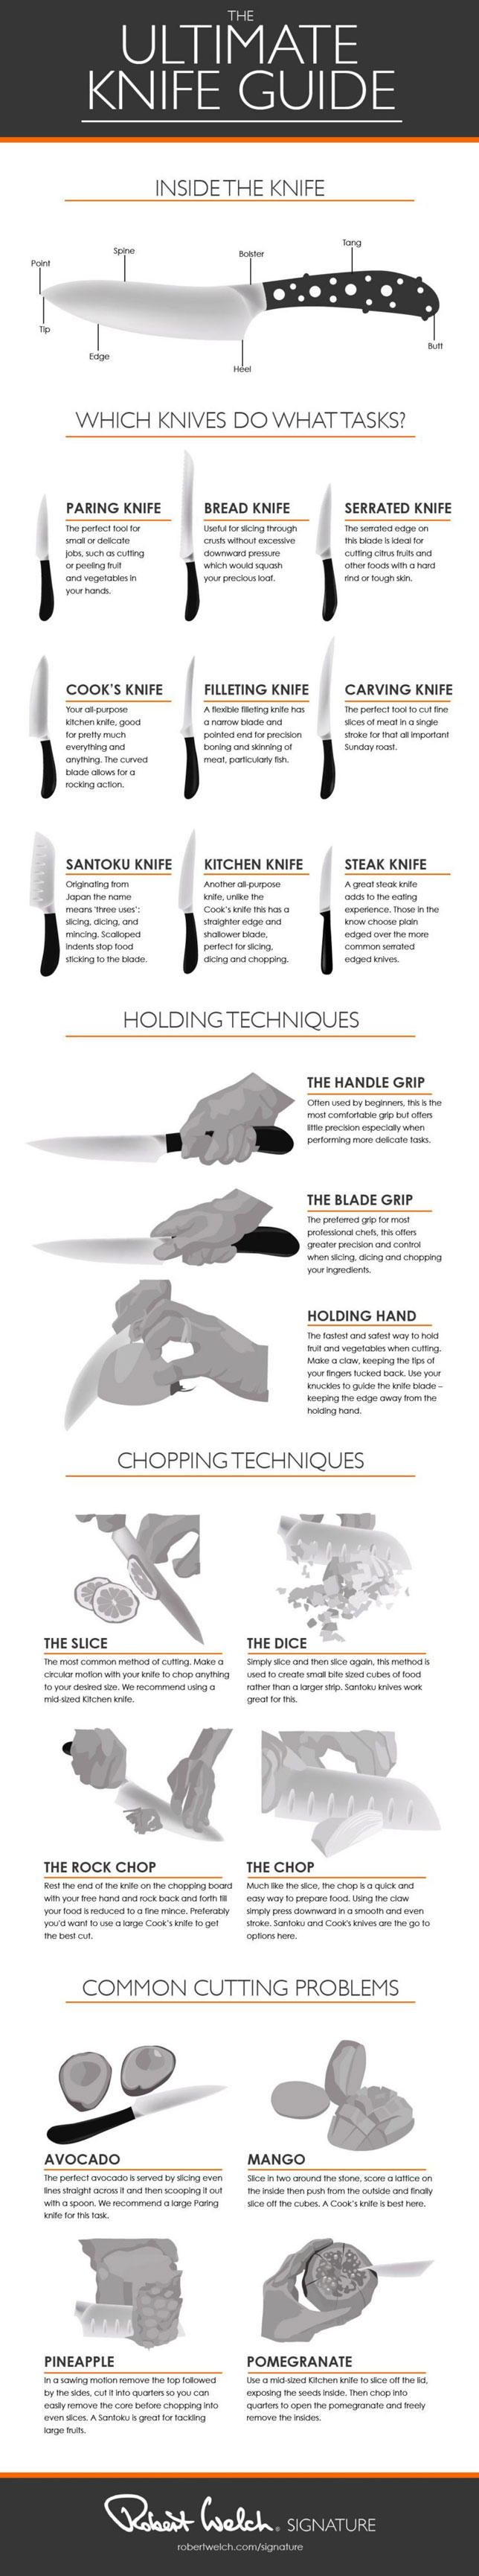 Ultimate-Knife-Guide